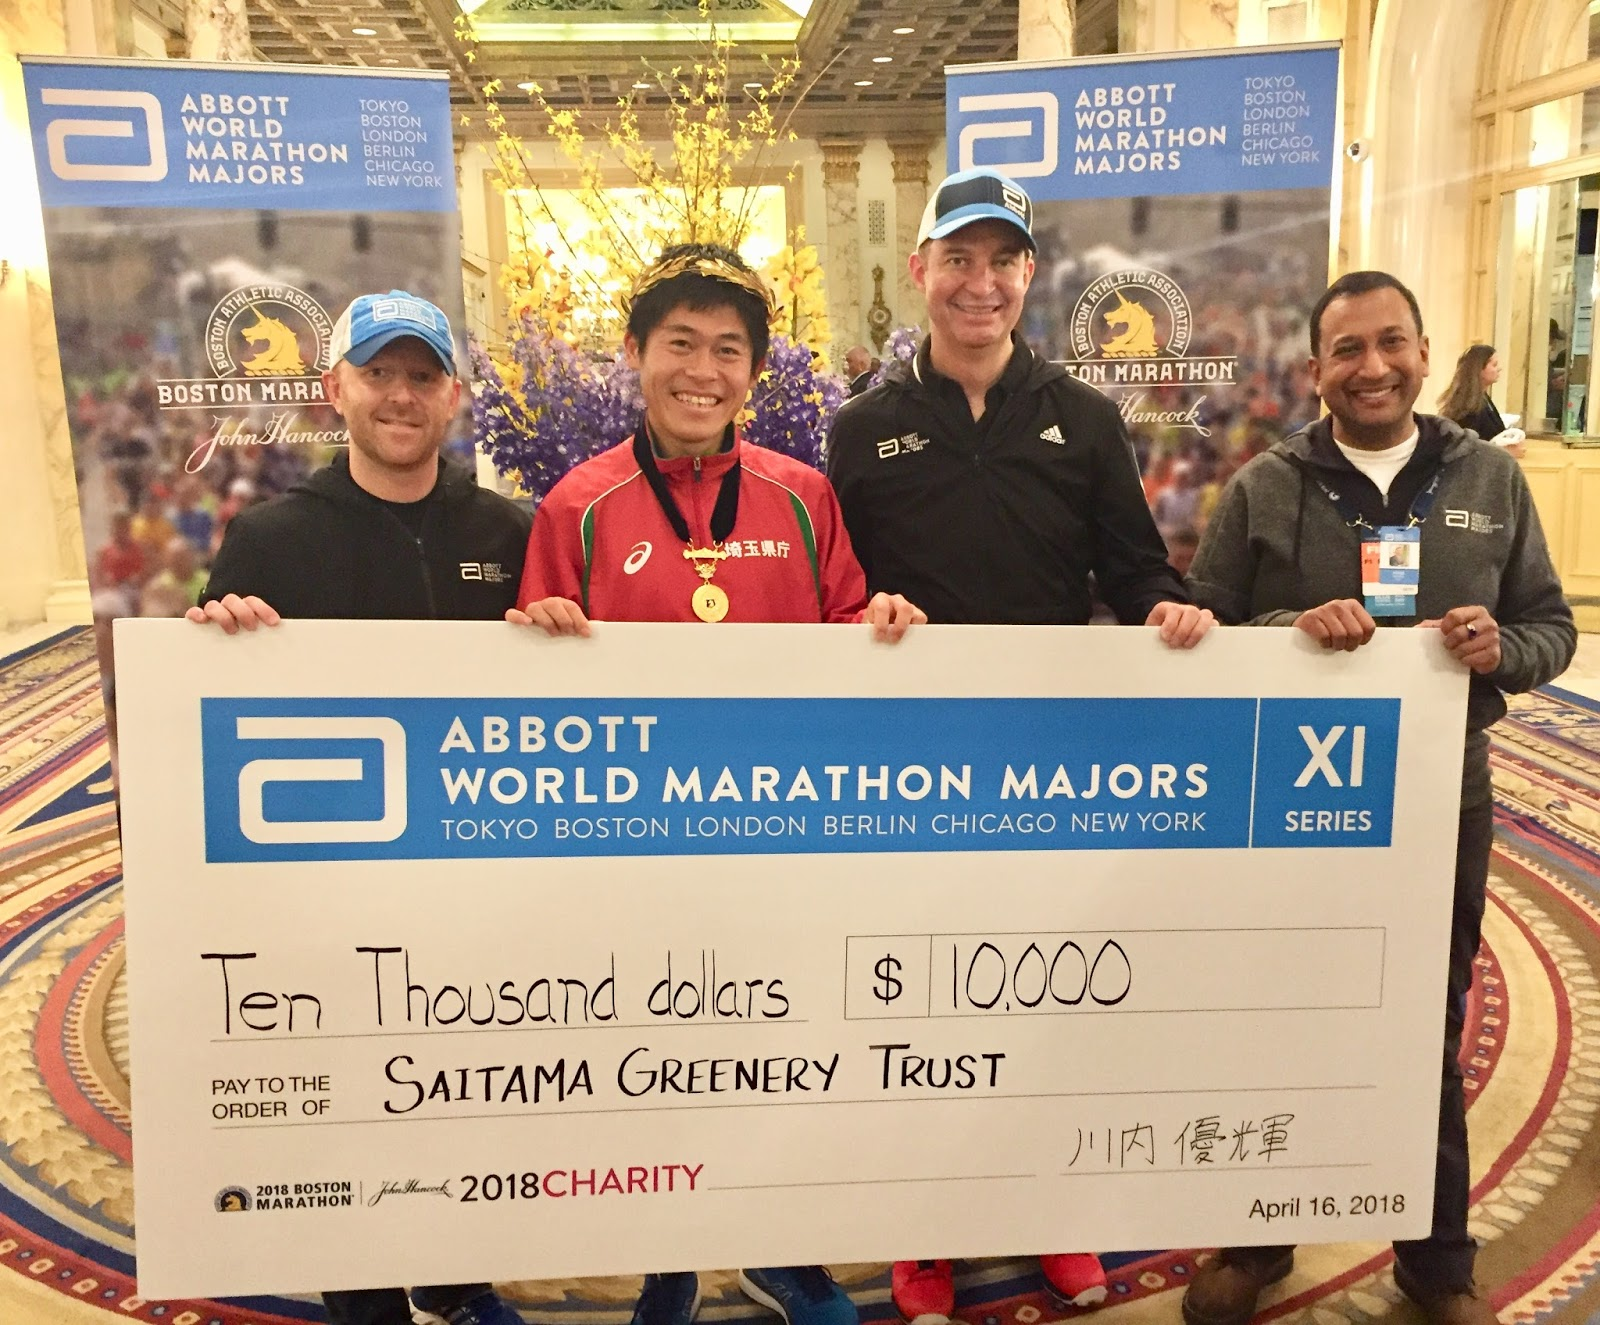 Kawauchi Voted 3rd Placer In Abbott World Marathon Majors Series XI